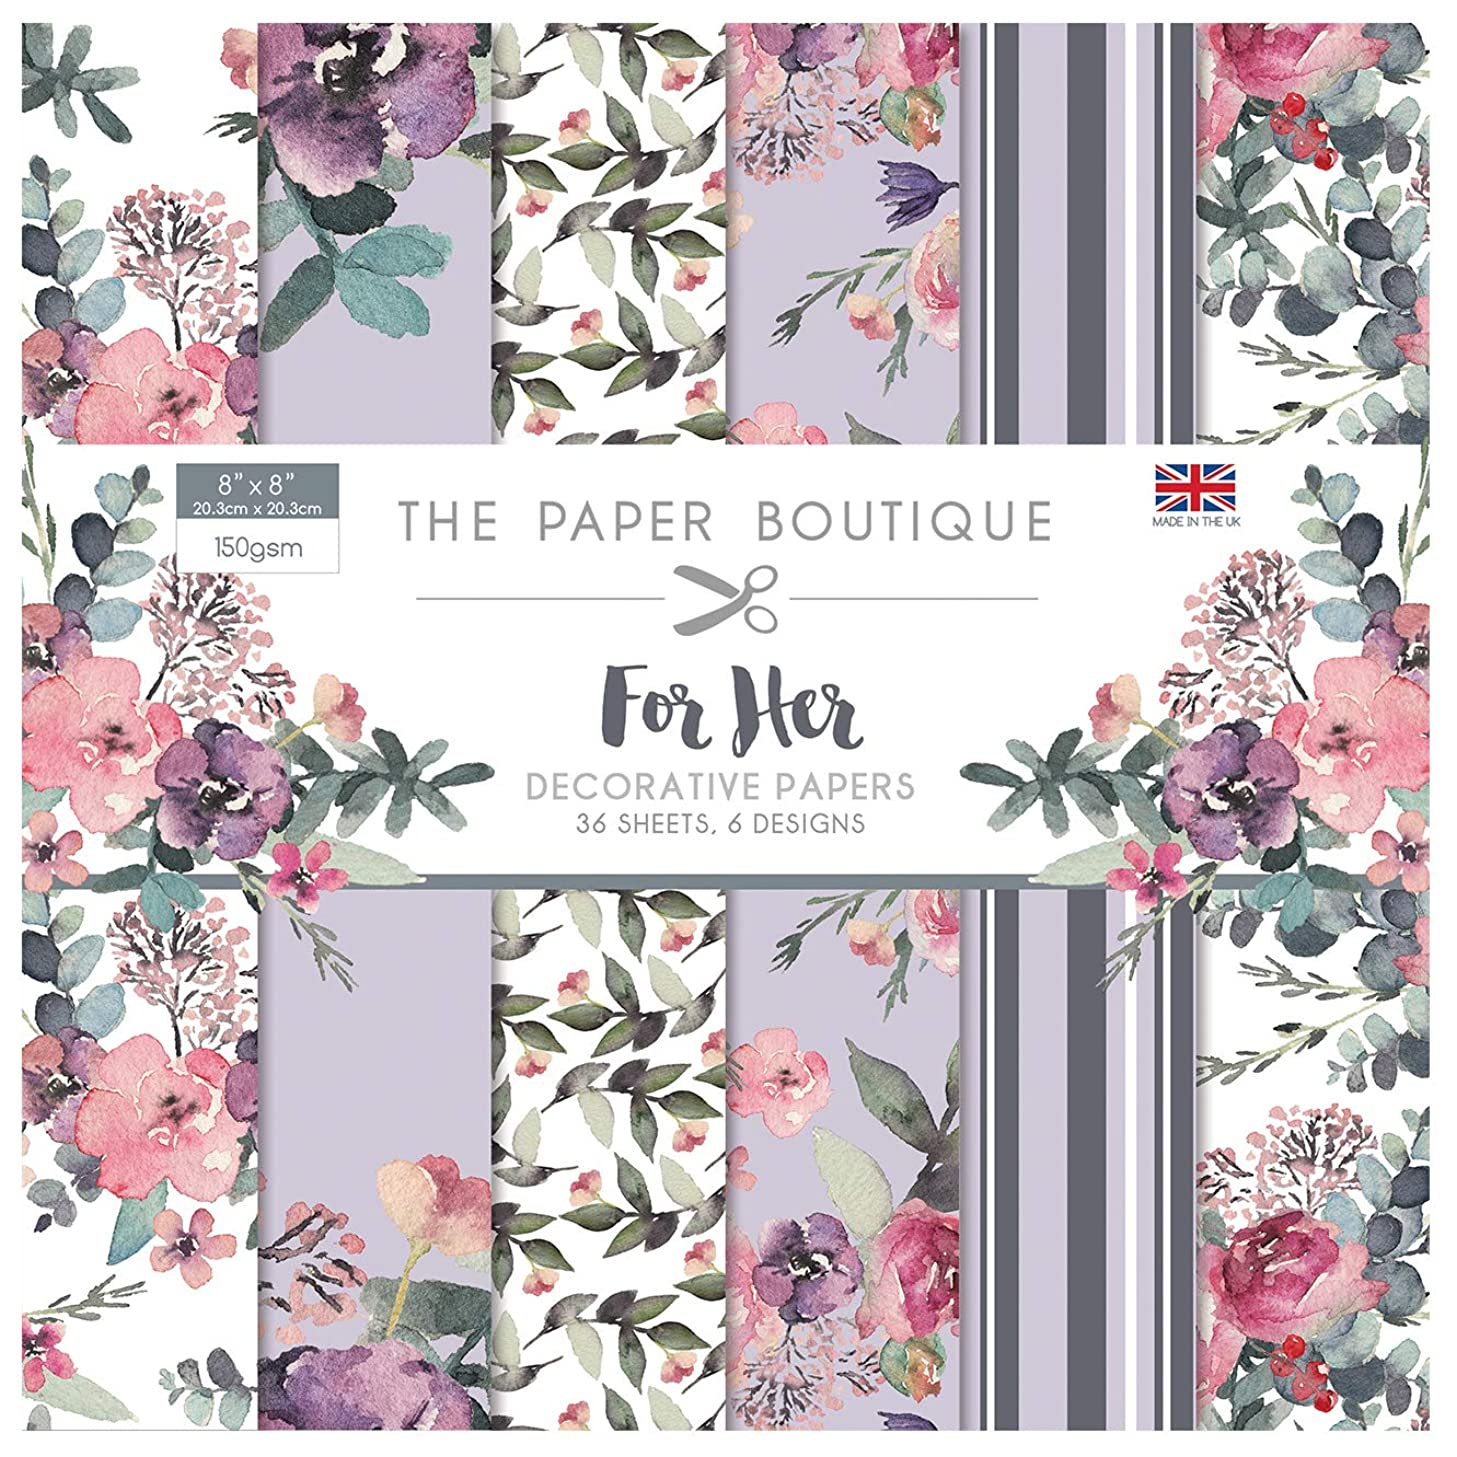 The Paper Boutique for Her 8x8 Paper Pad